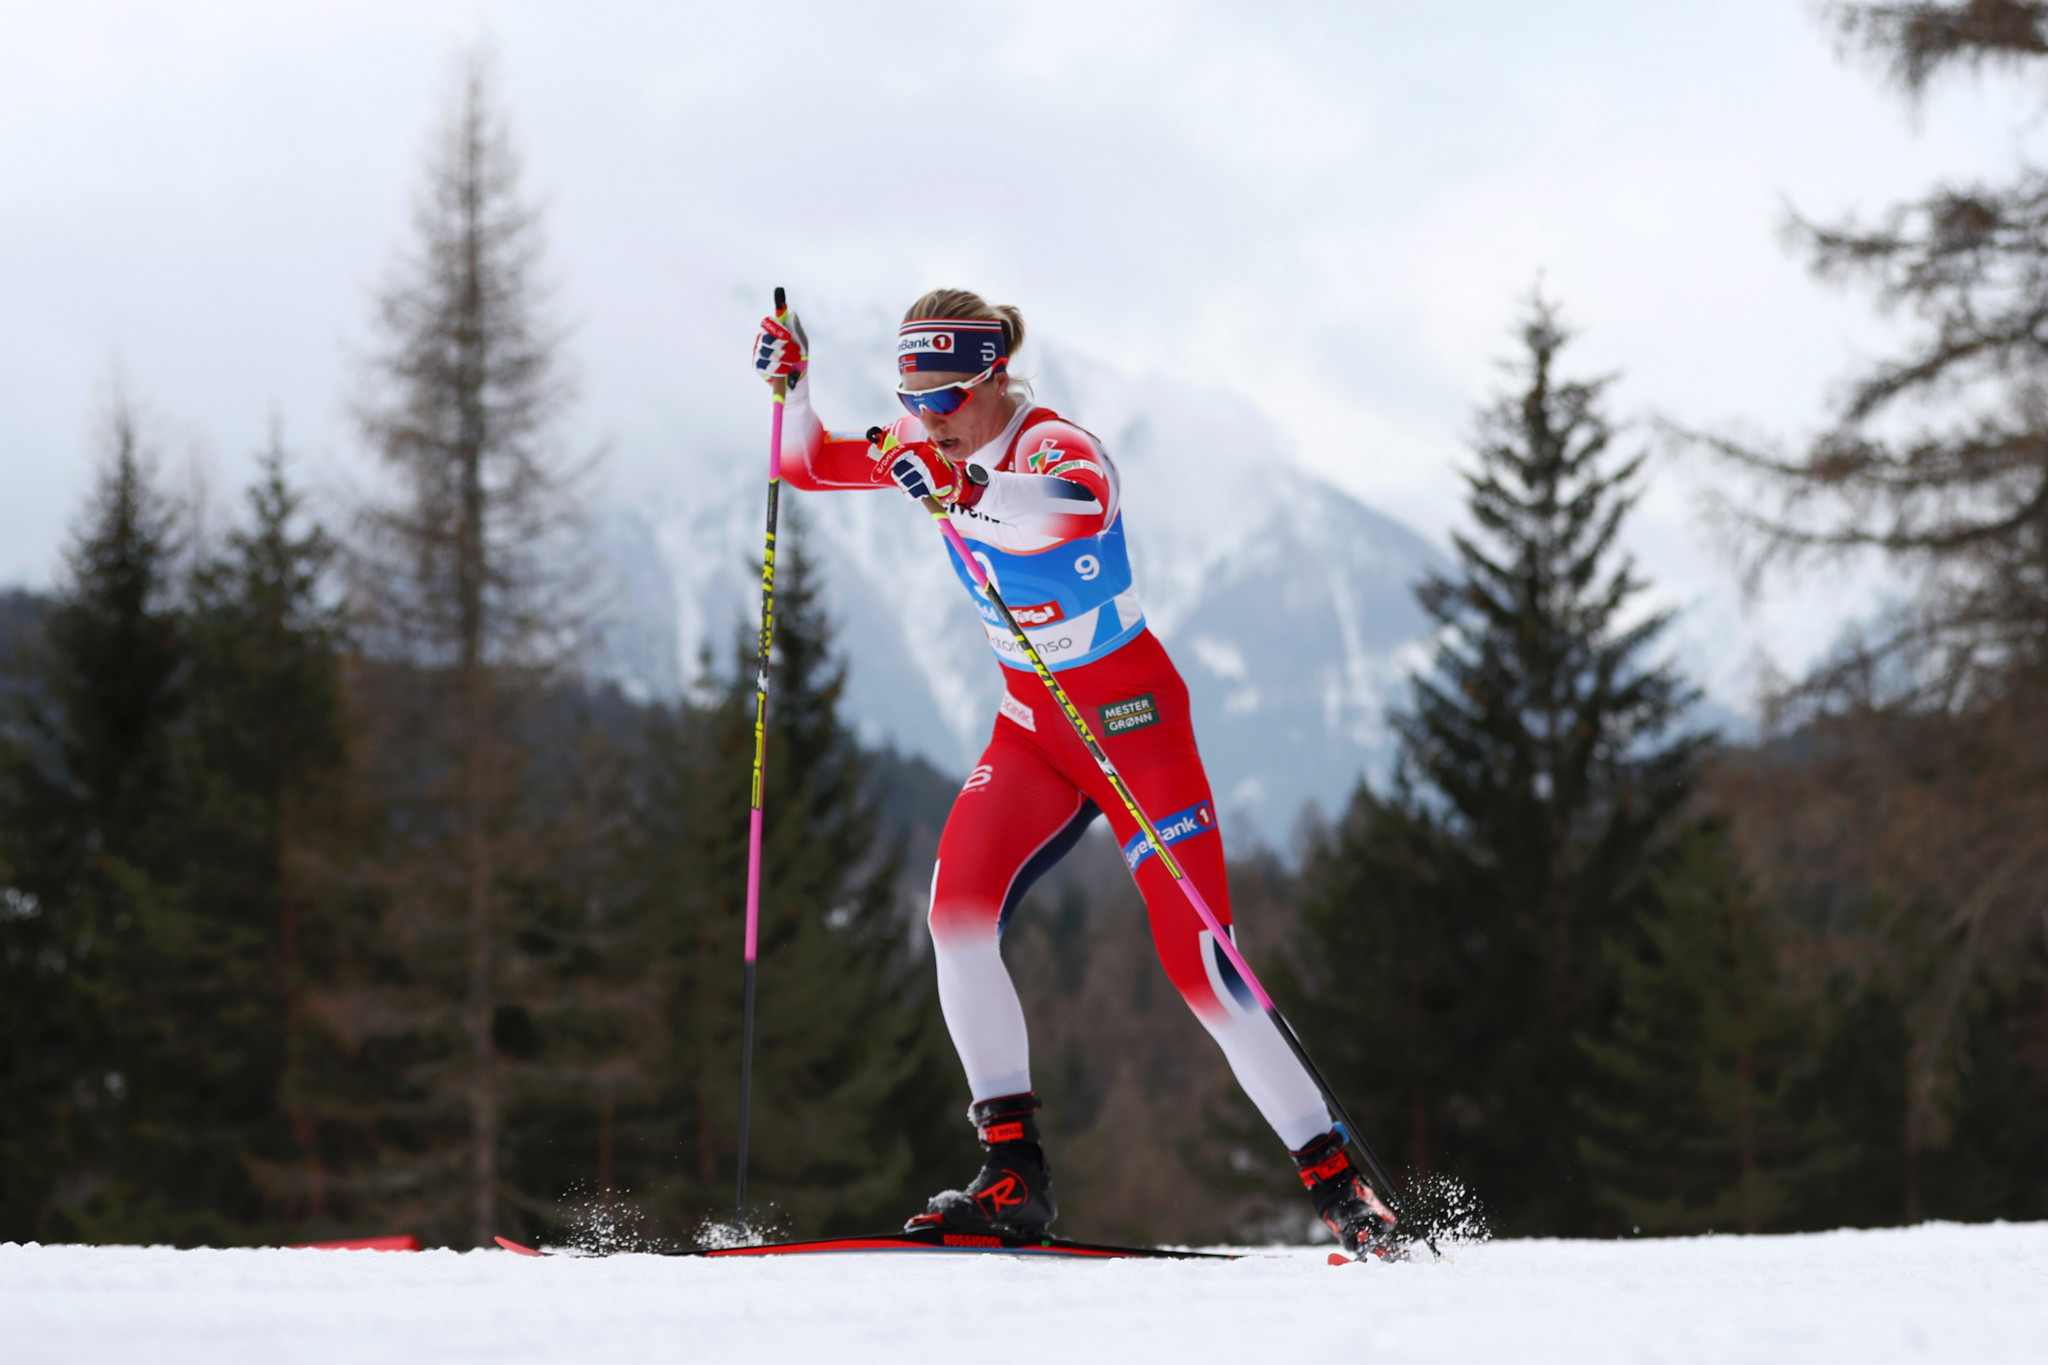 Pyeongchang 2018 Winter Olympic Games cross-country relay champion Astrid Uhrenholdt Jacobsen announced her retirement in order to continue her medical studies ©Getty Images